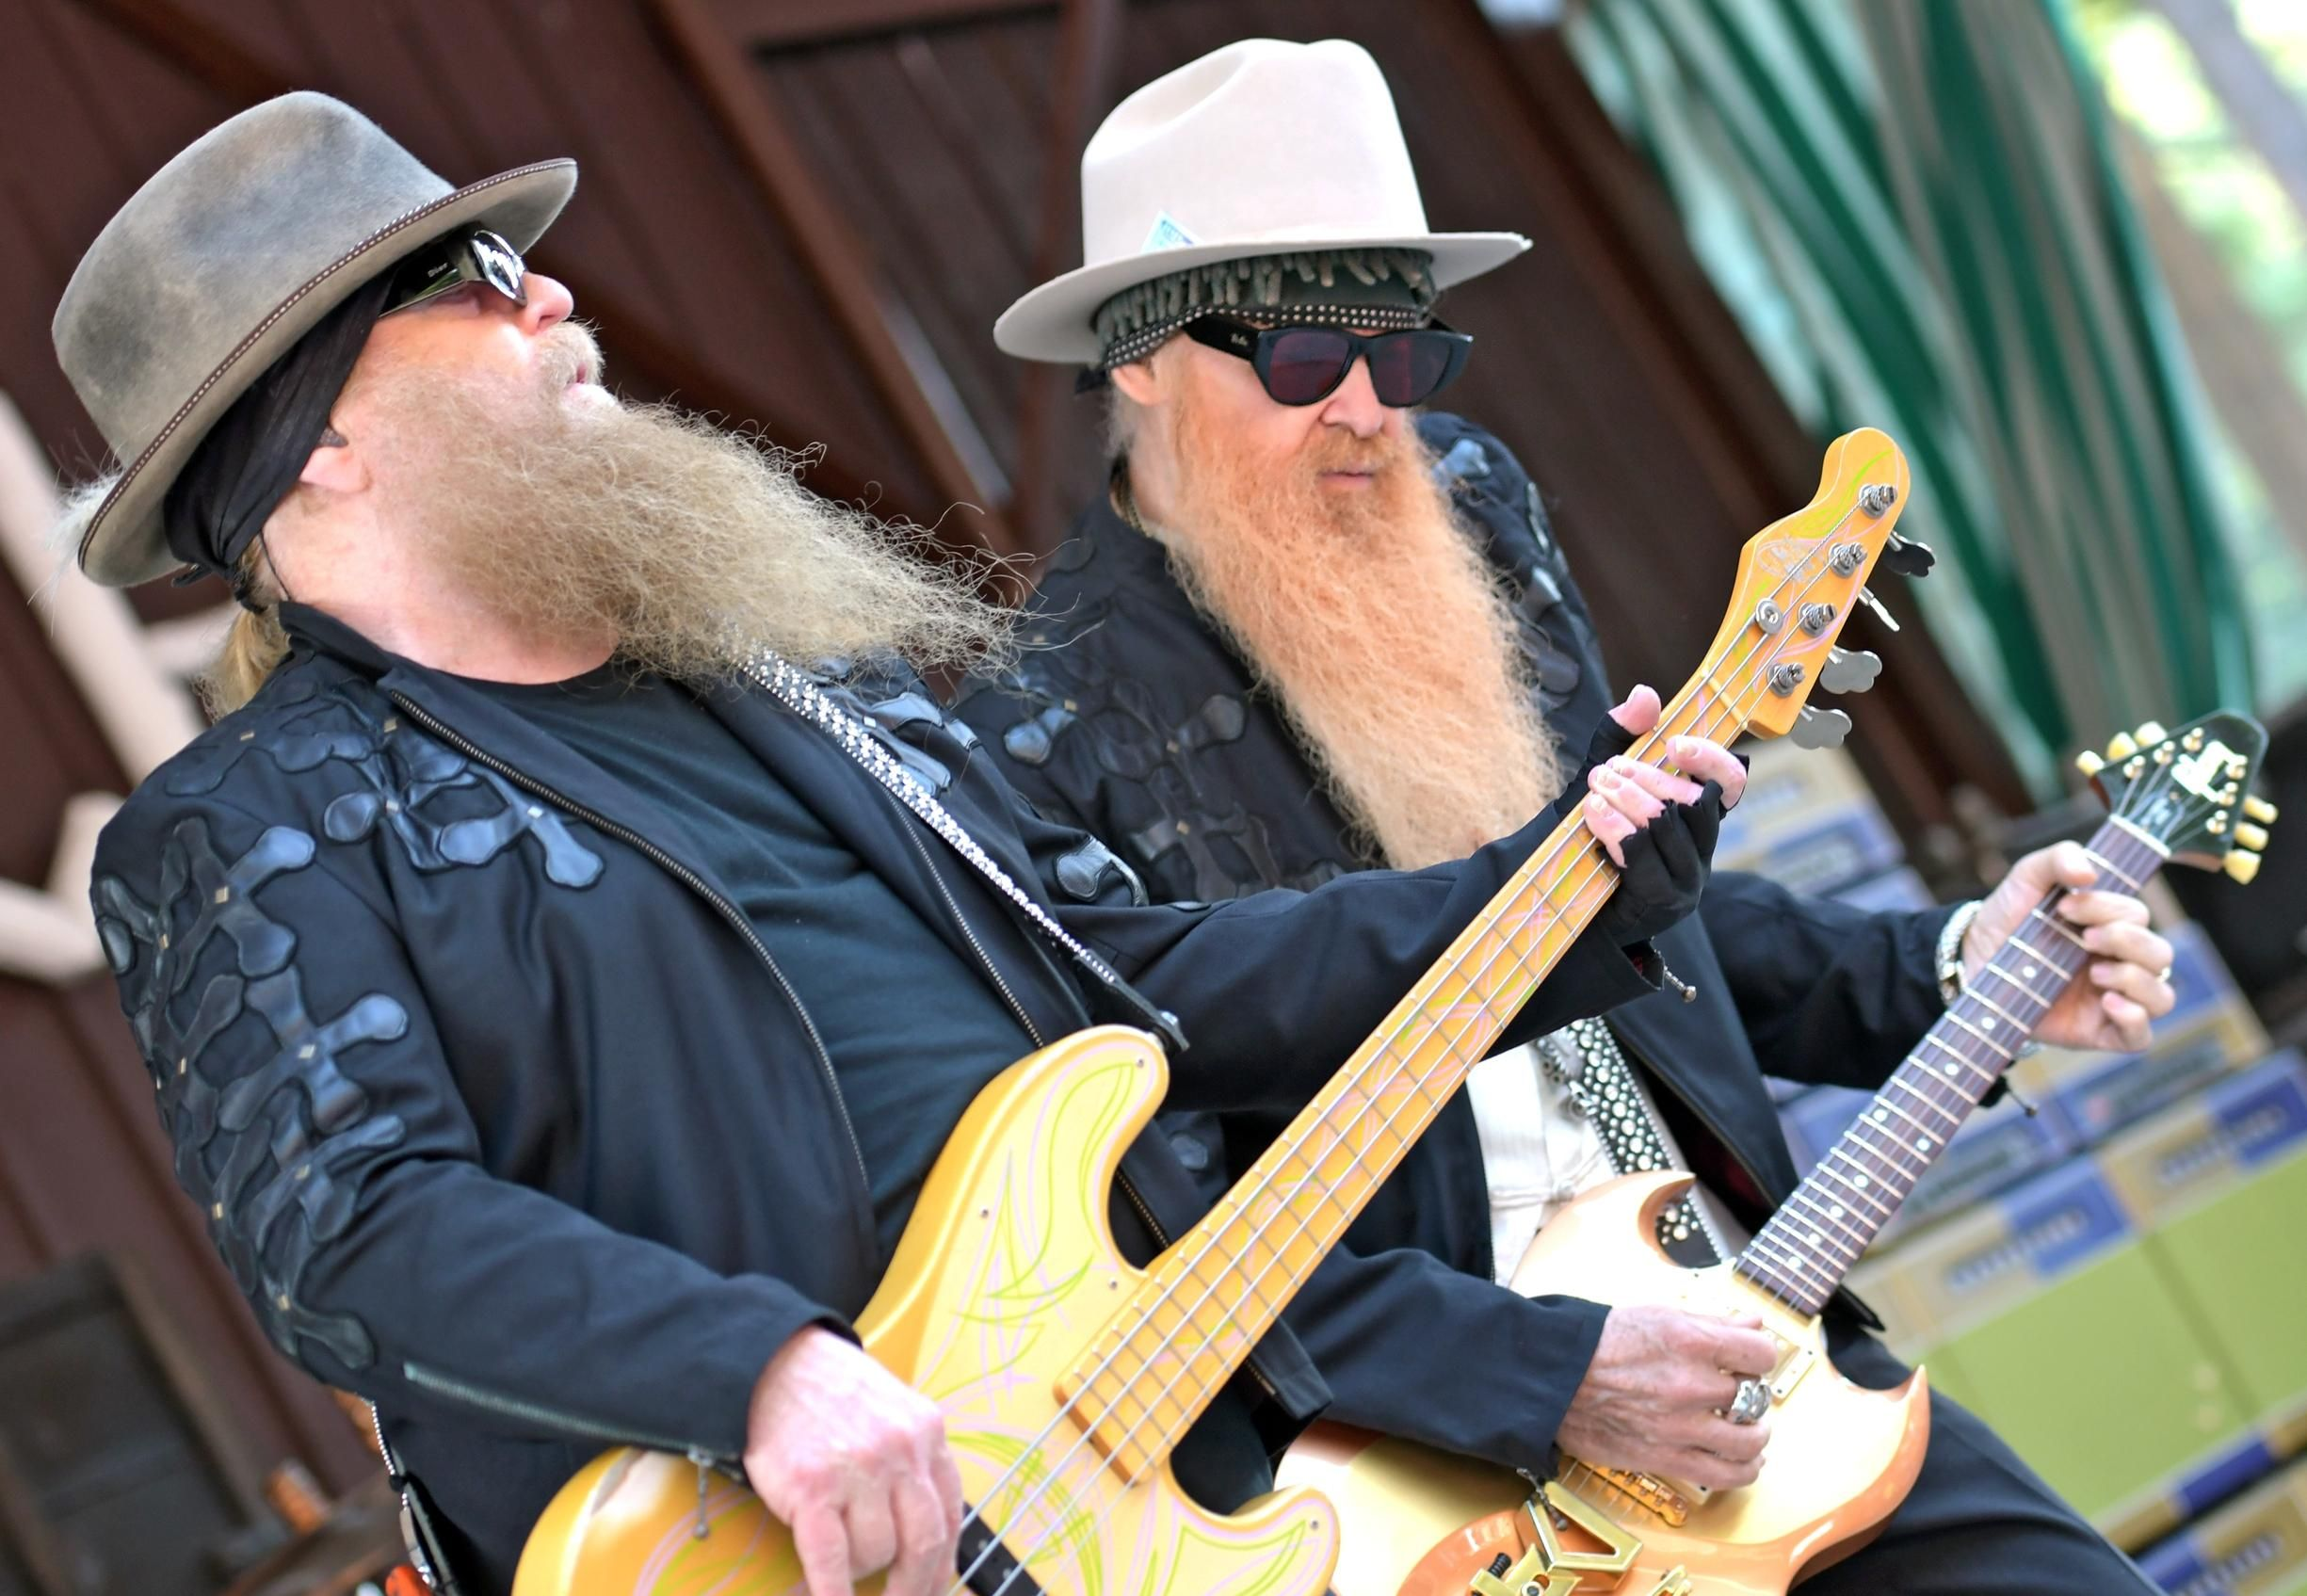 save up to 80% newest cheap price ZZ Top performs at Indian Ranch | T&G Photographs | Riding ...